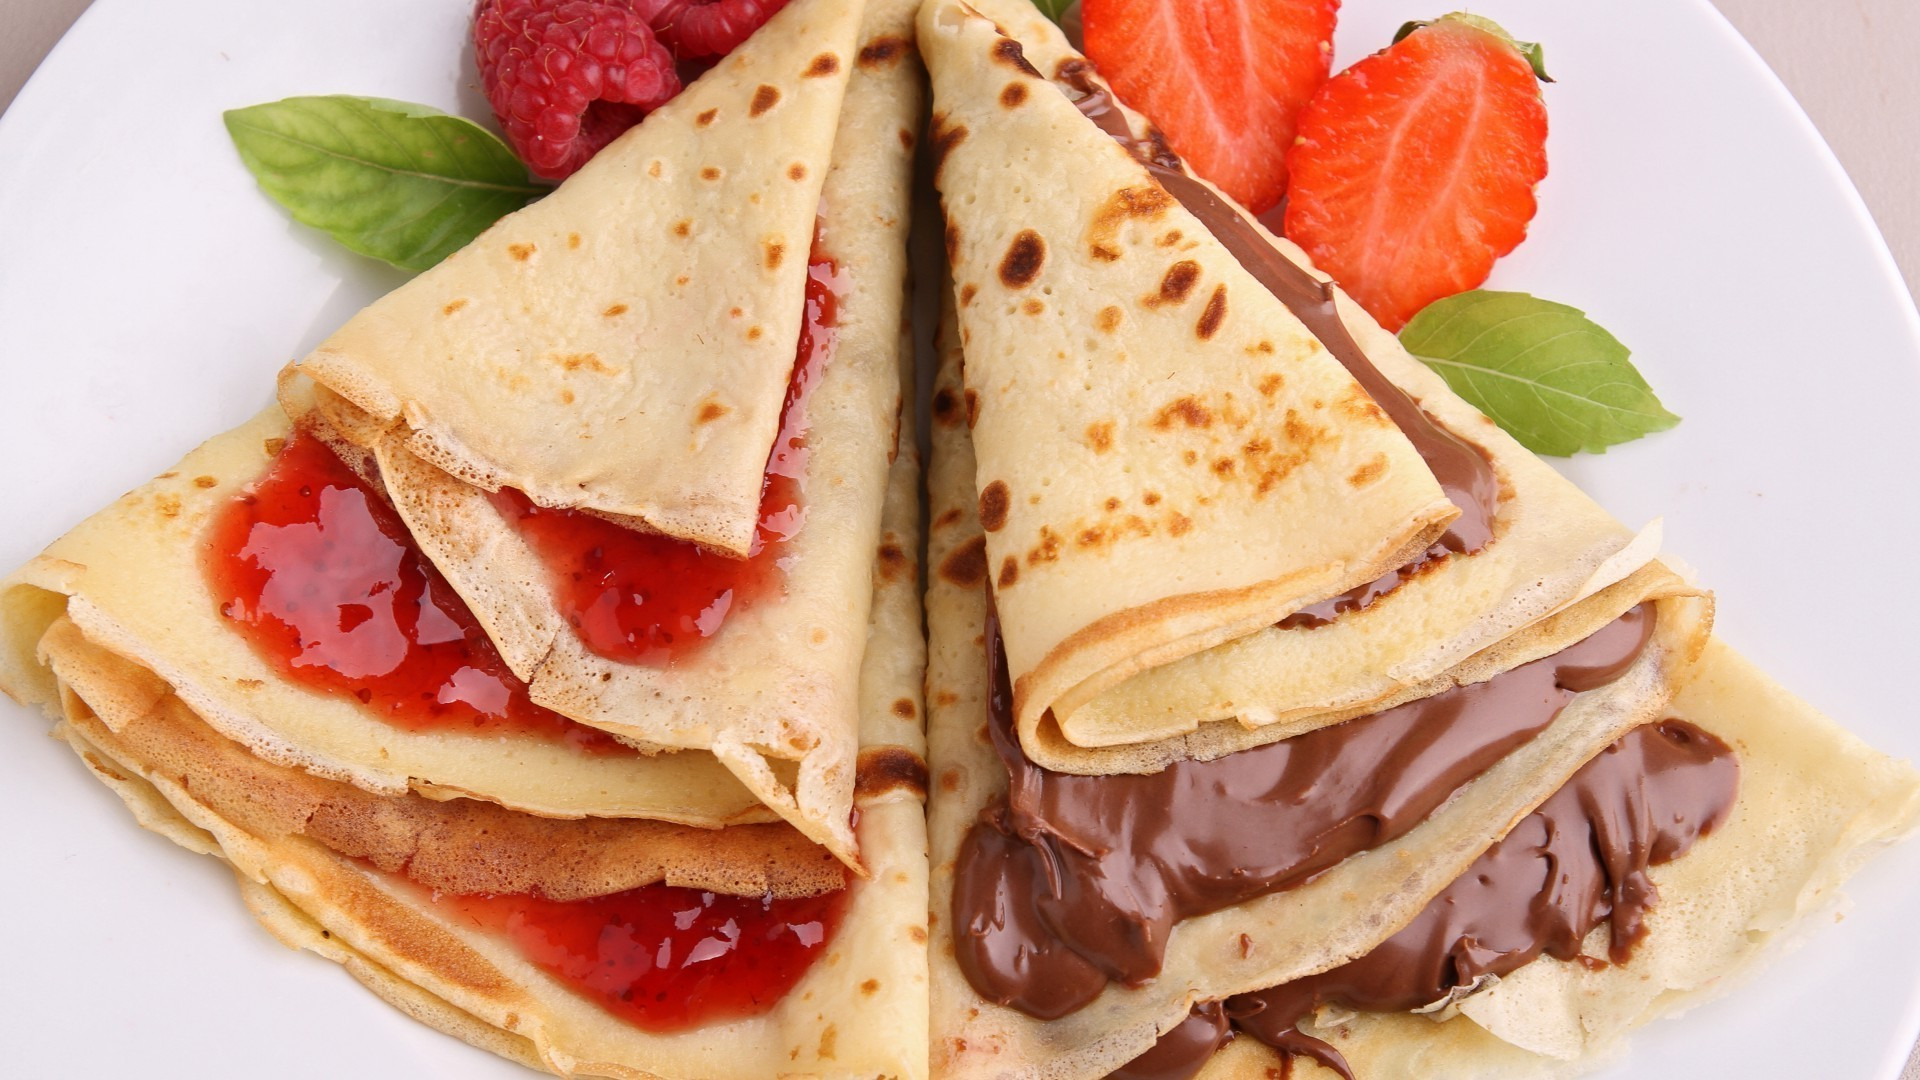 Pancakes with jam and chocolate